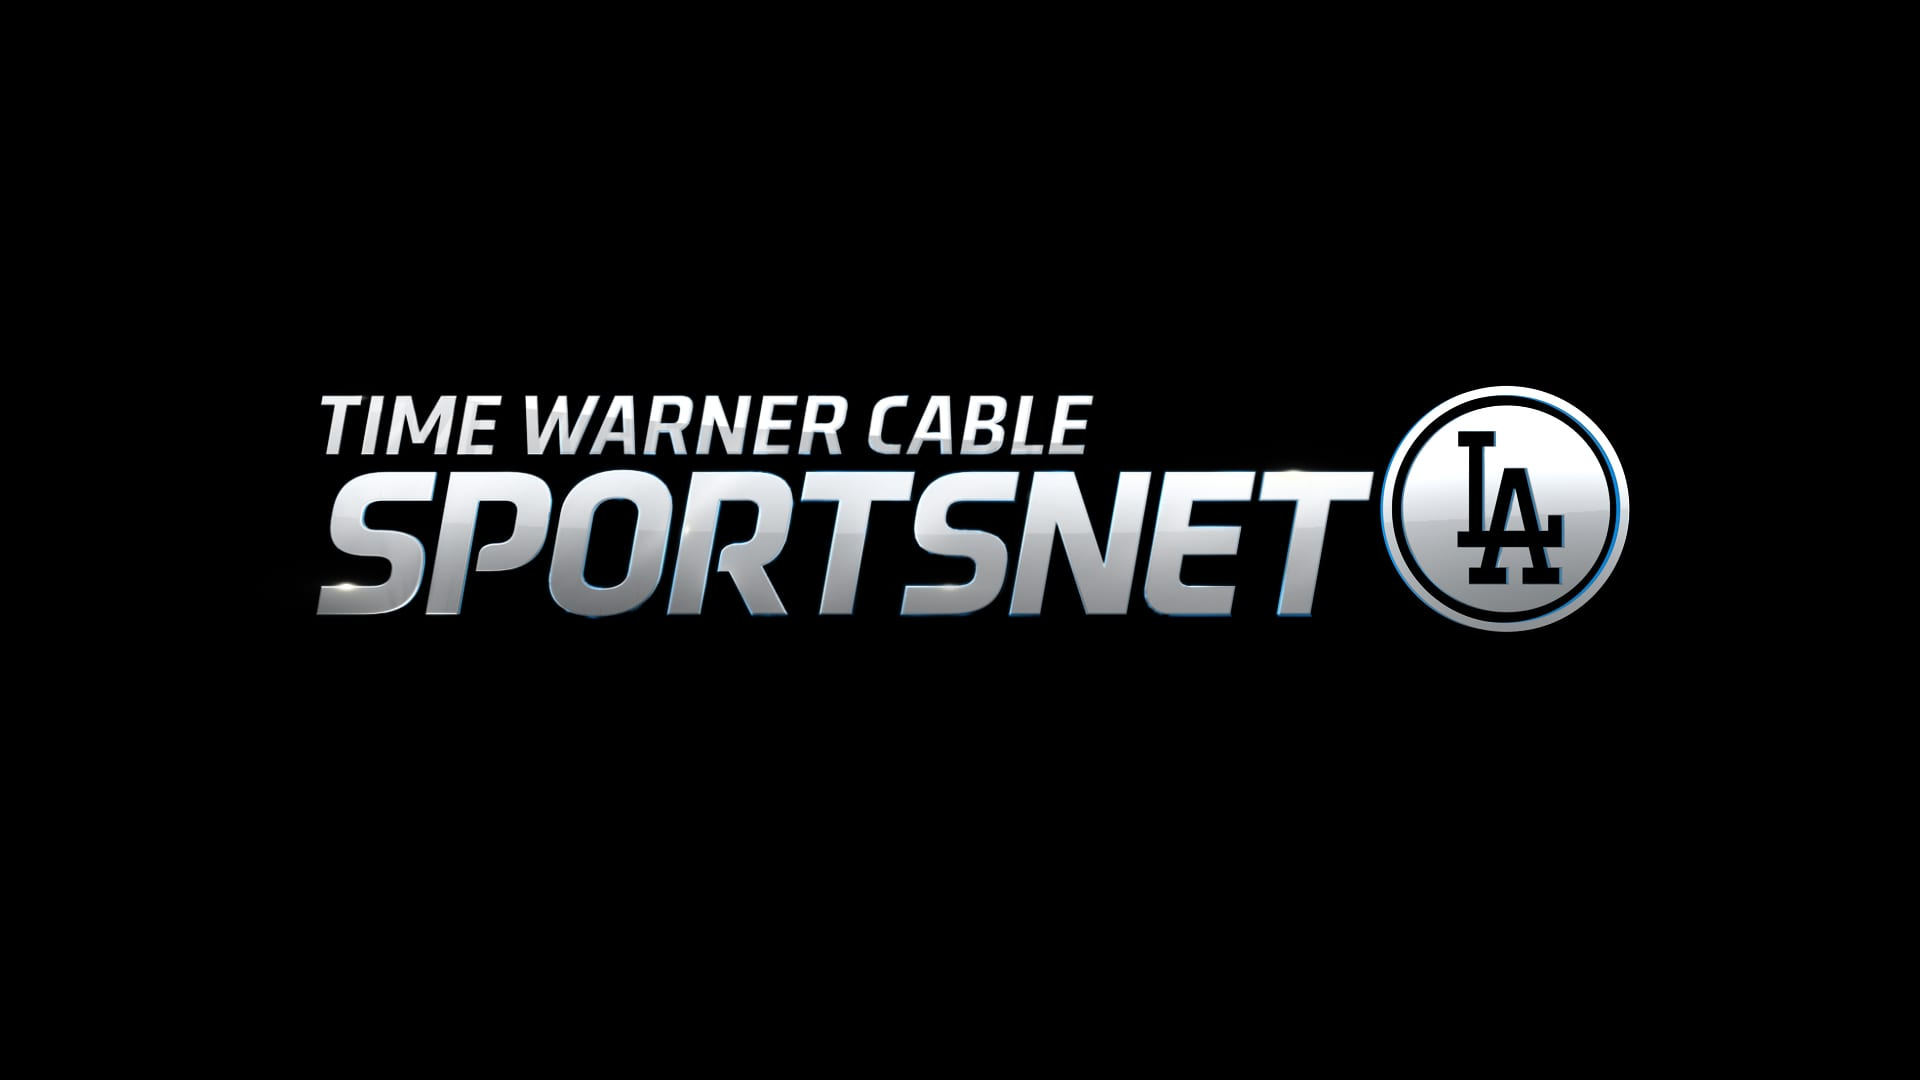 Dodgers News Time Warner Cable Offers Sportsnet La On Multiyear Deal